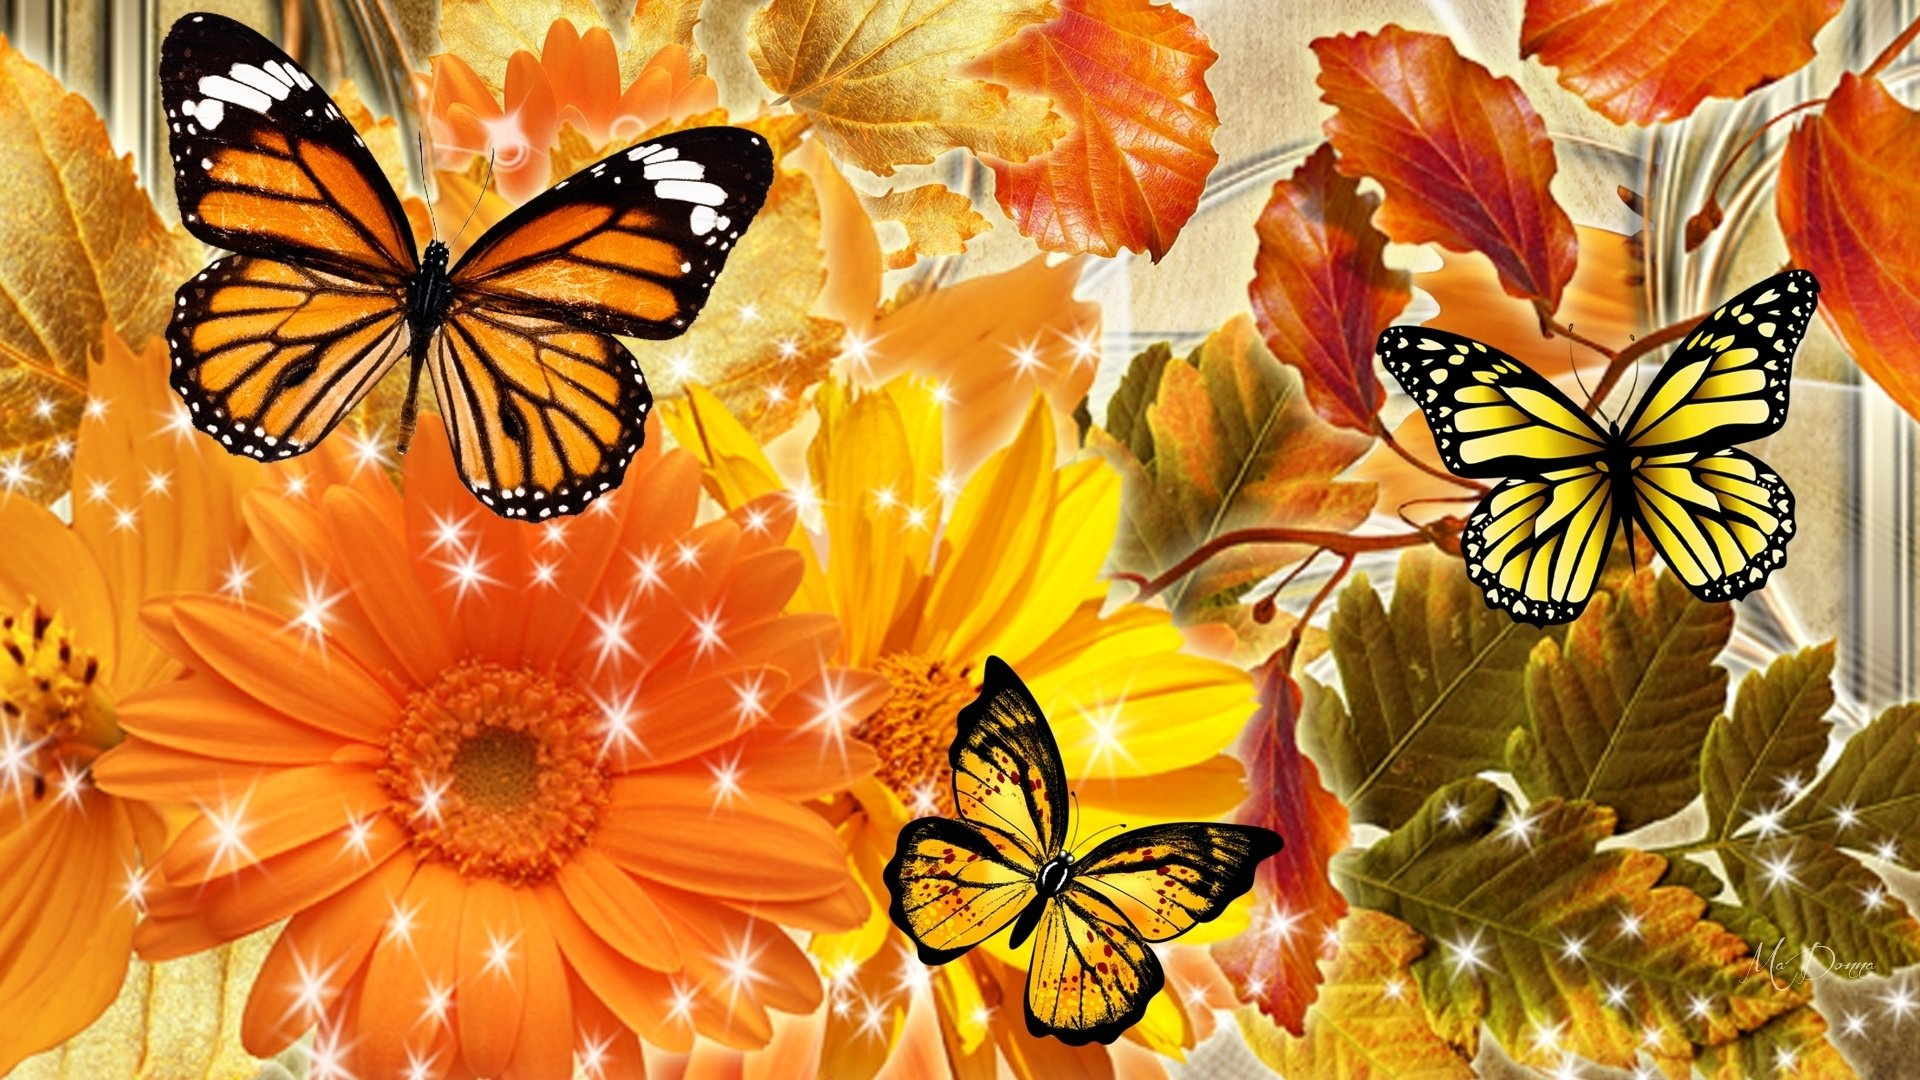 Aninimal Book: Autumn Flowers and Butterflies HD Wallpaper   Background ...